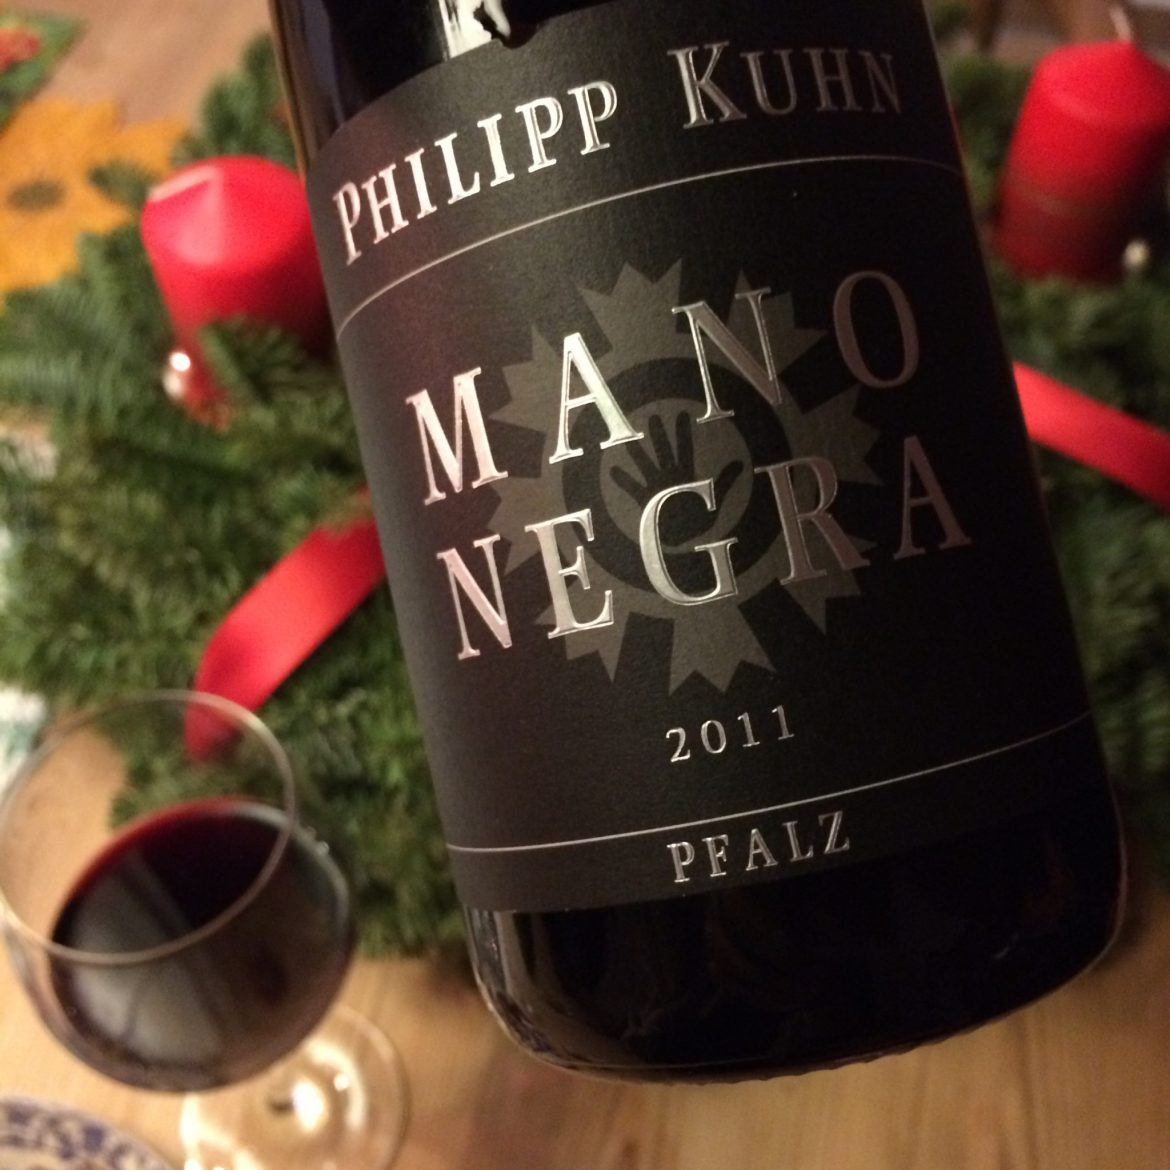 A bottle and glass of German red wine from the Pfalz